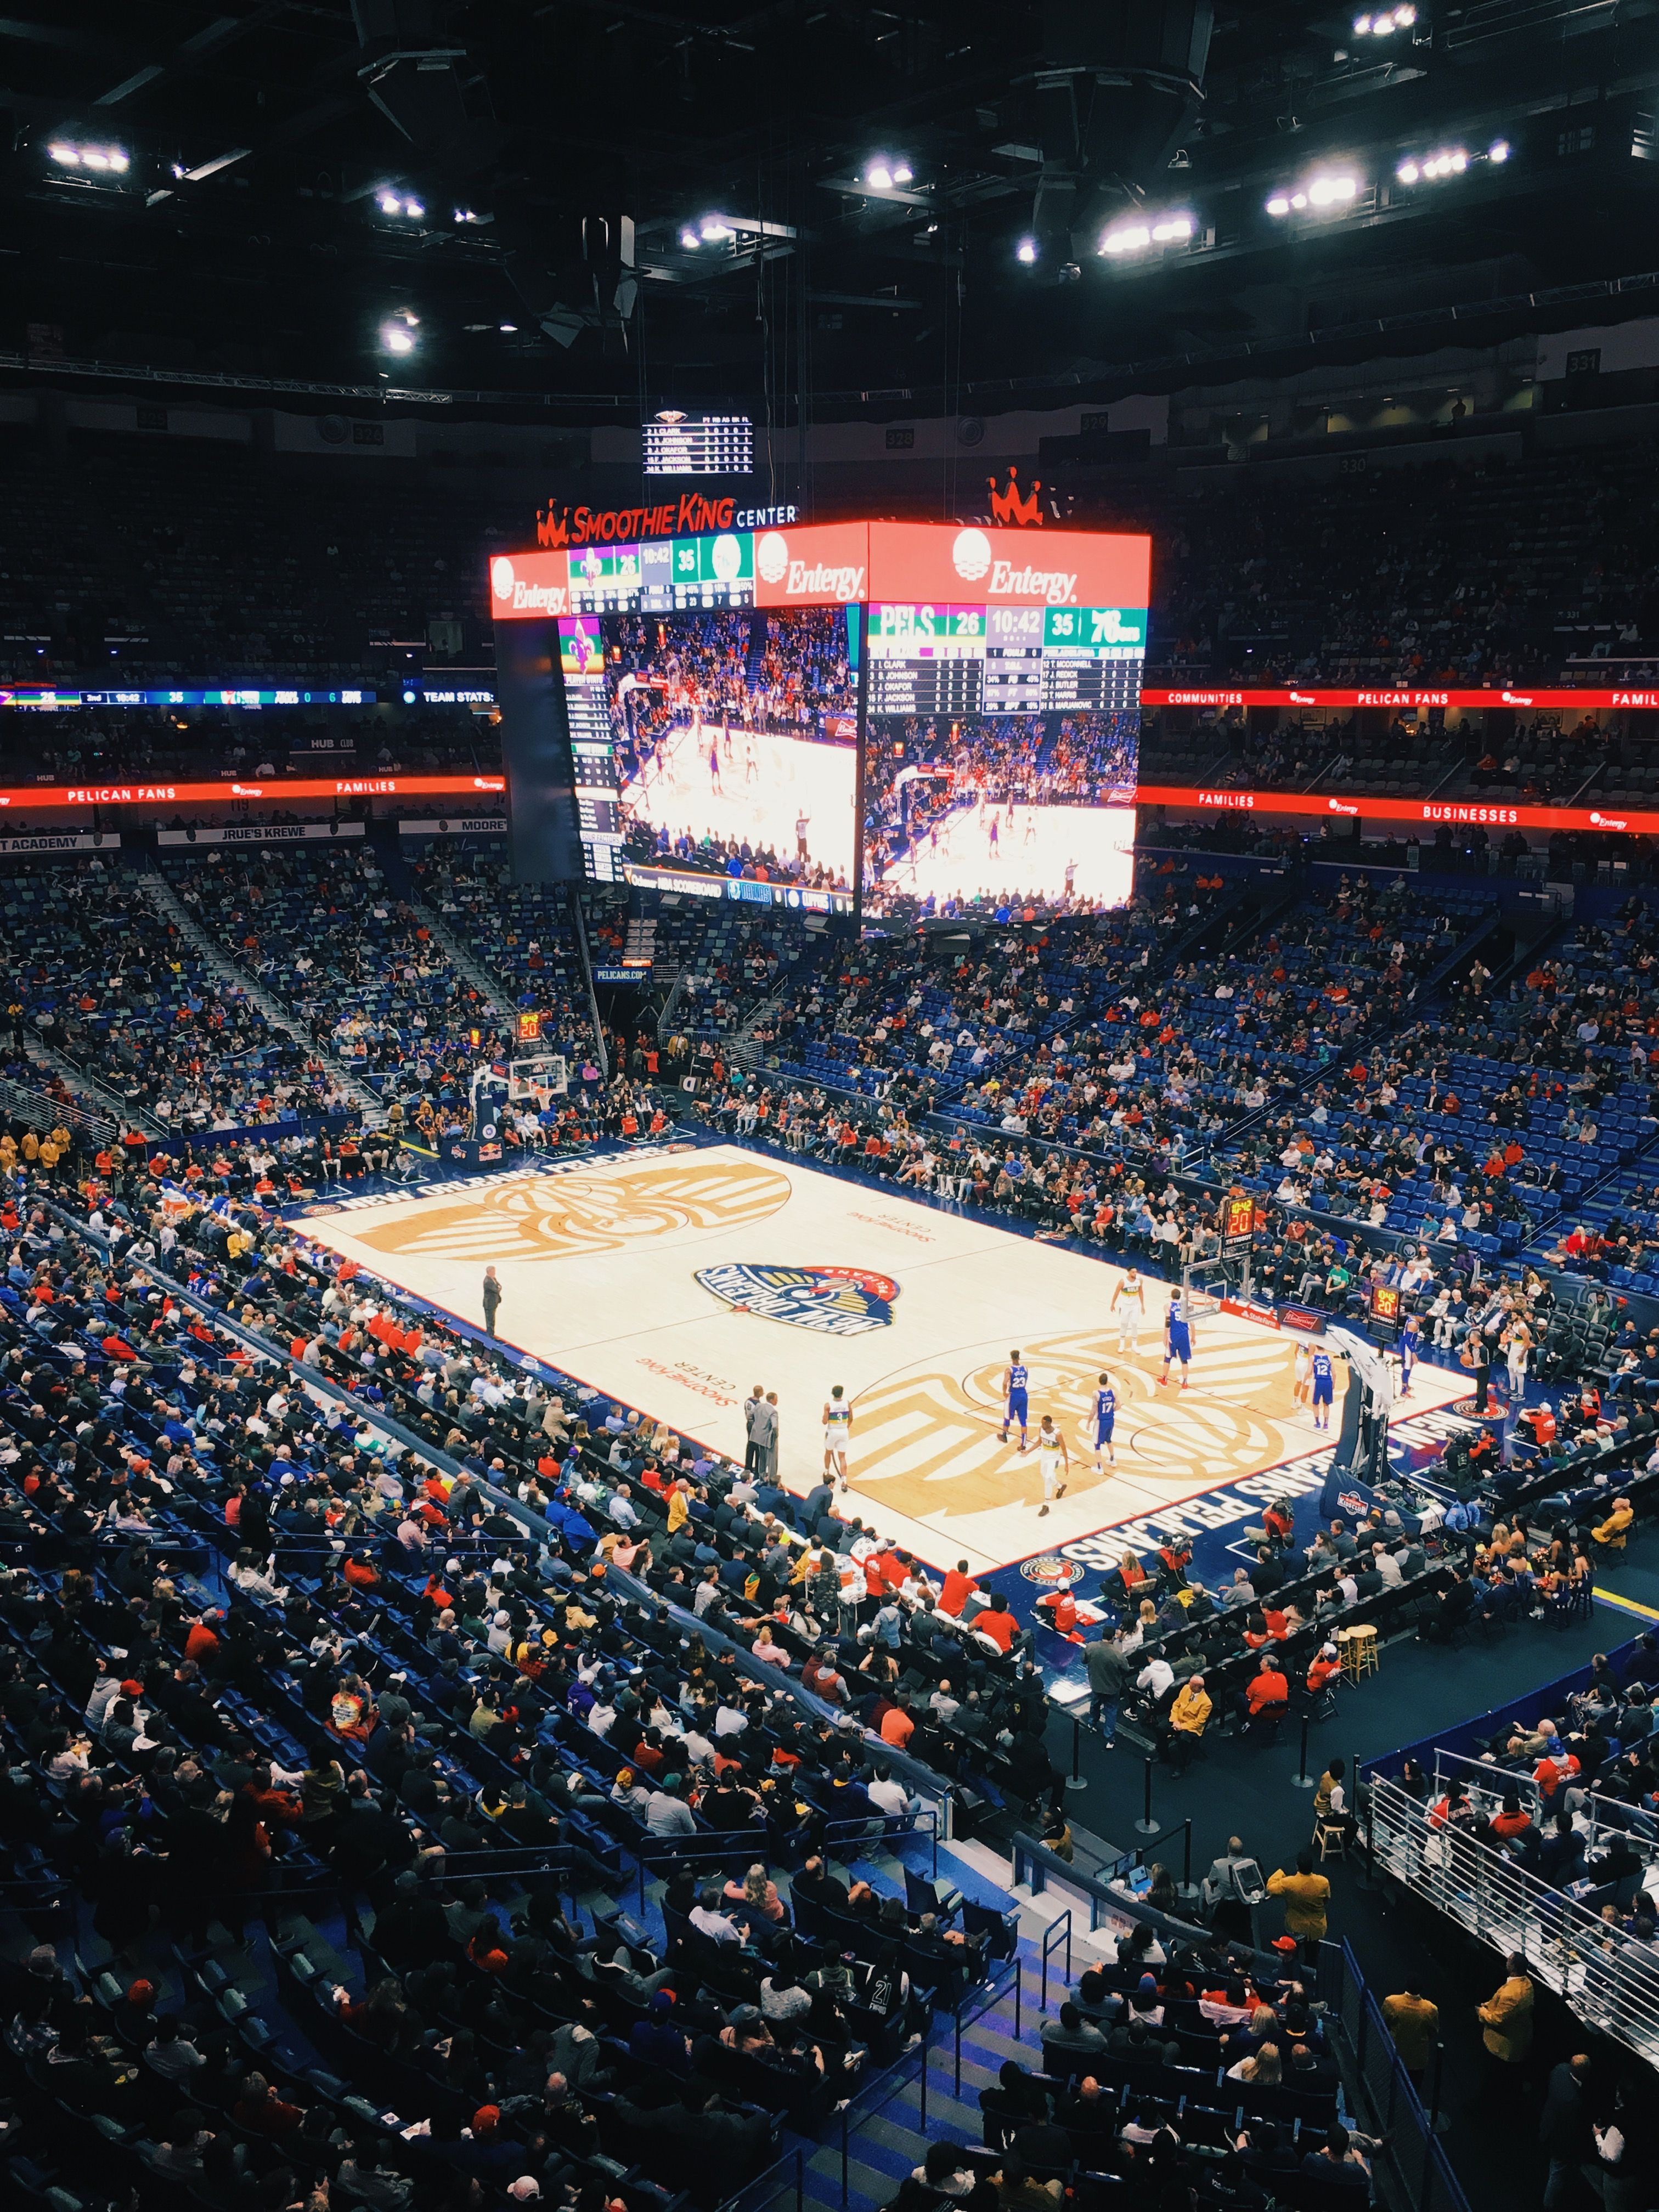 New Orleans Pelicans Arena Smoothie King Center Nba Arenas Smoothie King Center New Orleans Pelicans